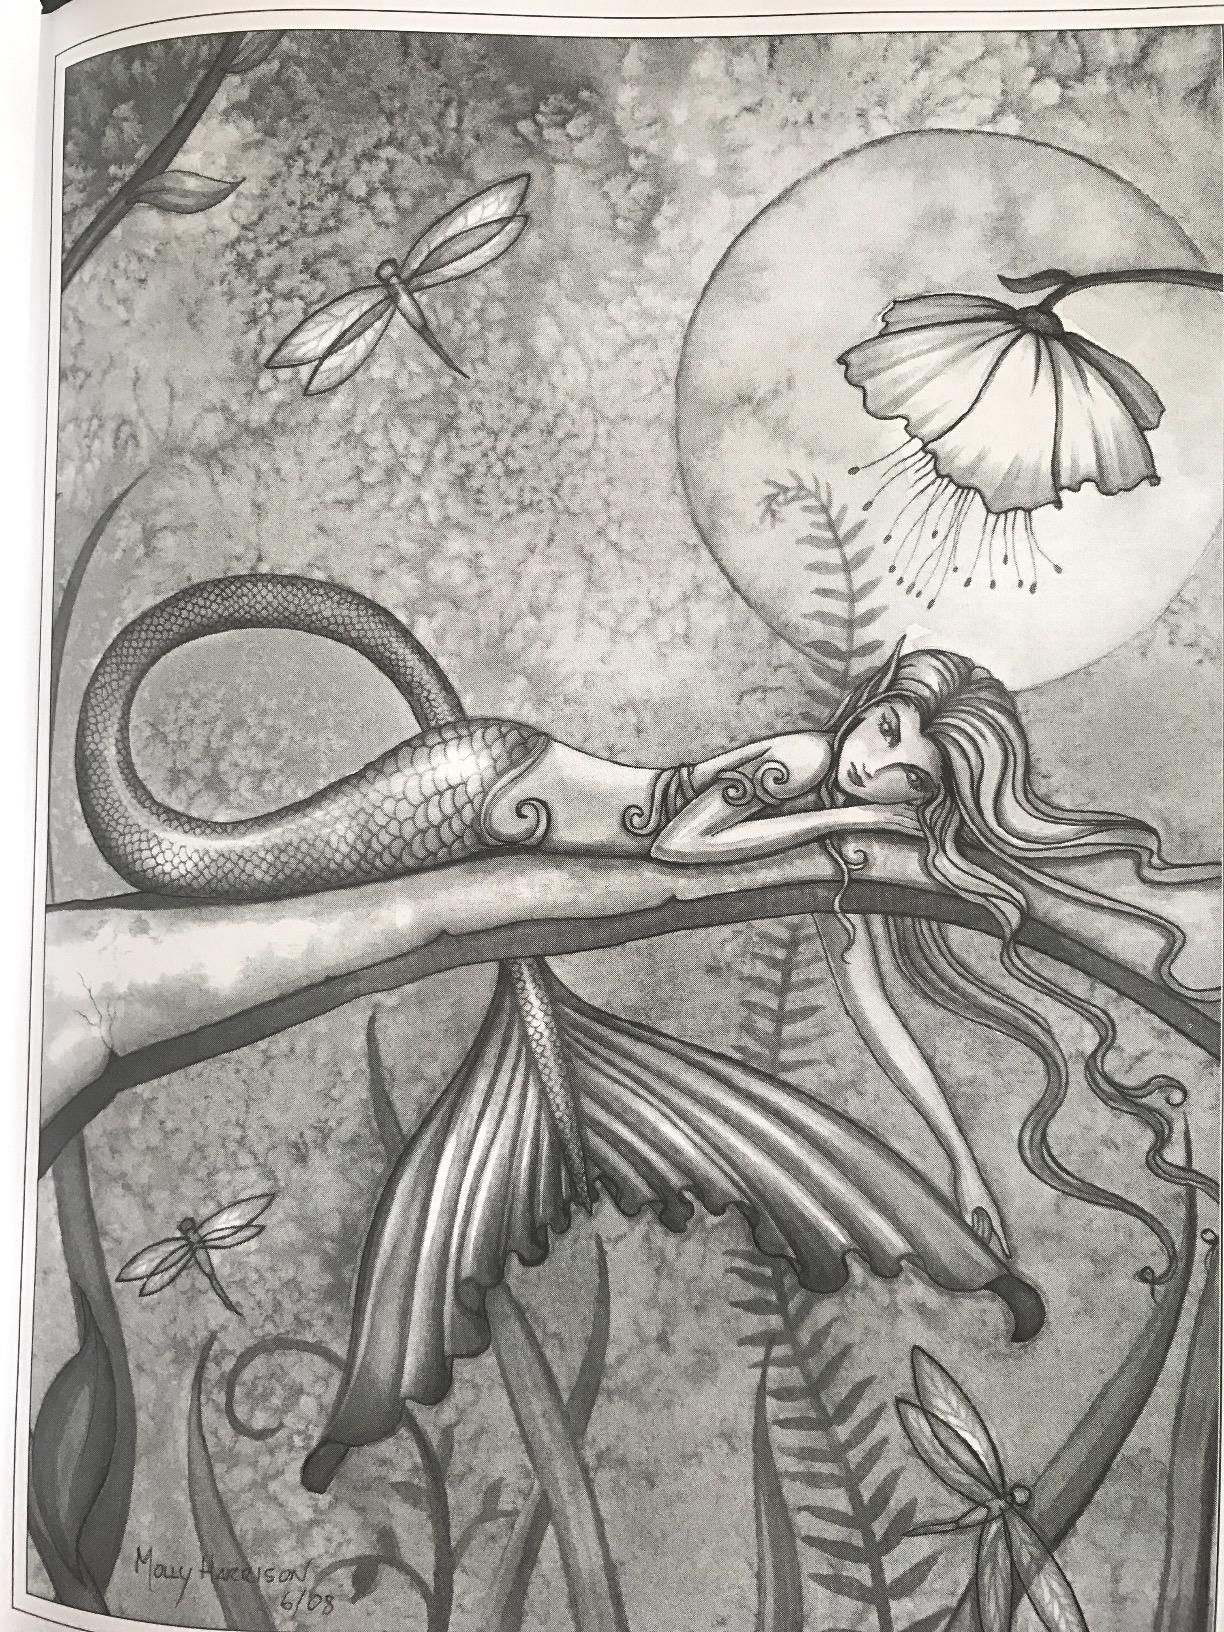 Pin By Paulina Ortiz On Coloring Pages Grayscale Coloring Books Mermaid Coloring Book Grayscale Coloring